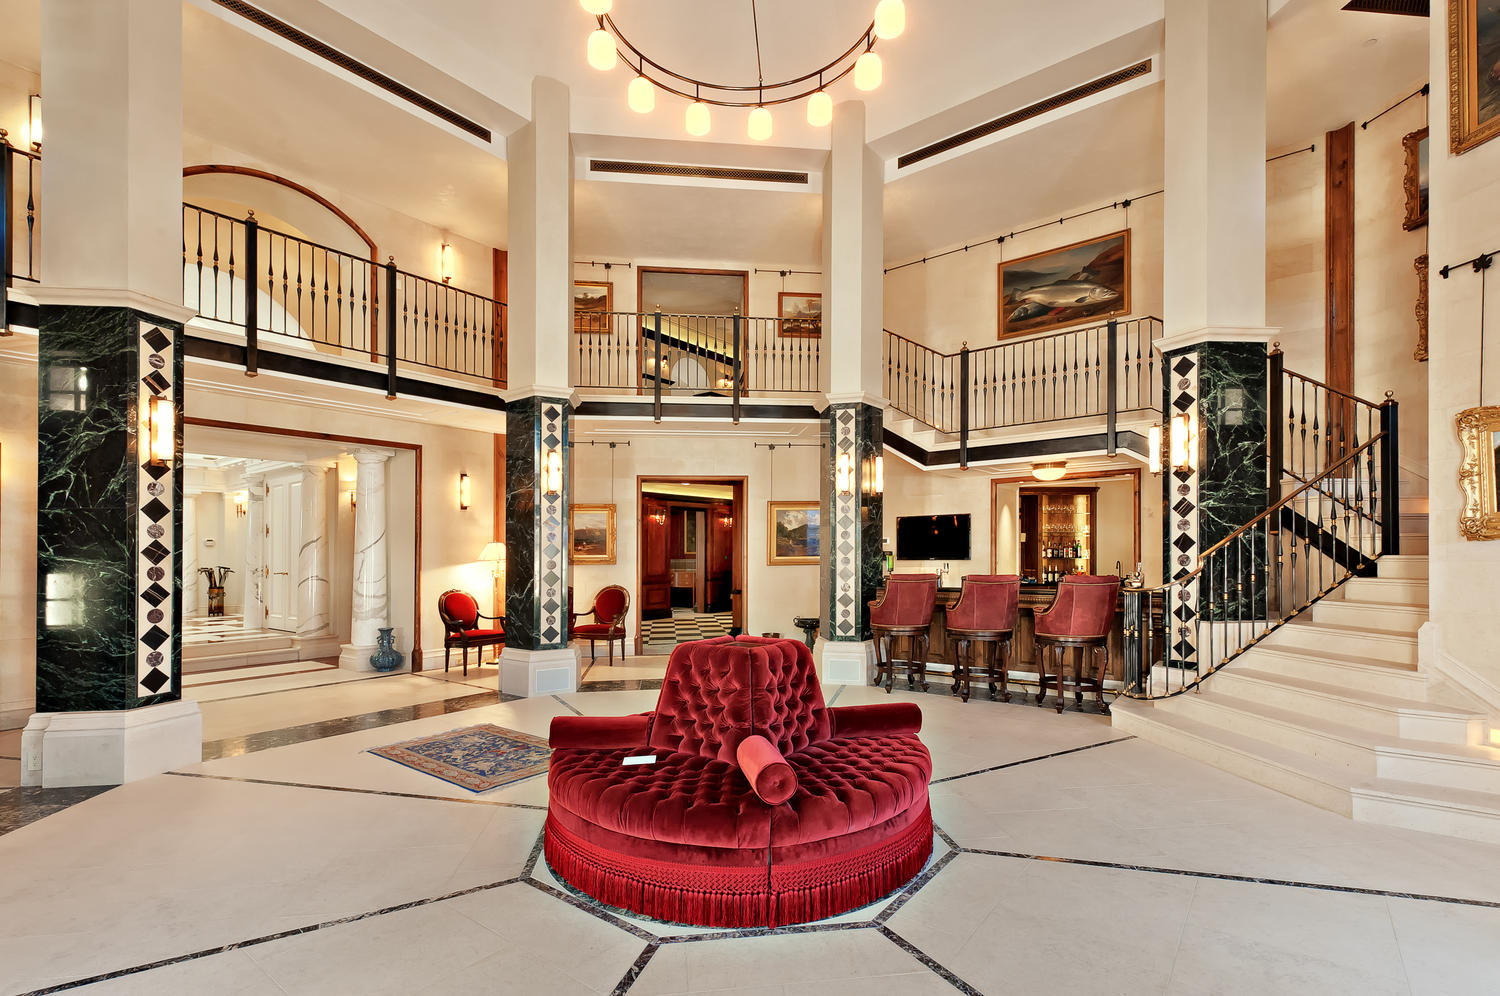 Inside pictures of mansions ANZ scandal: Inside the mansions owned by bankers and